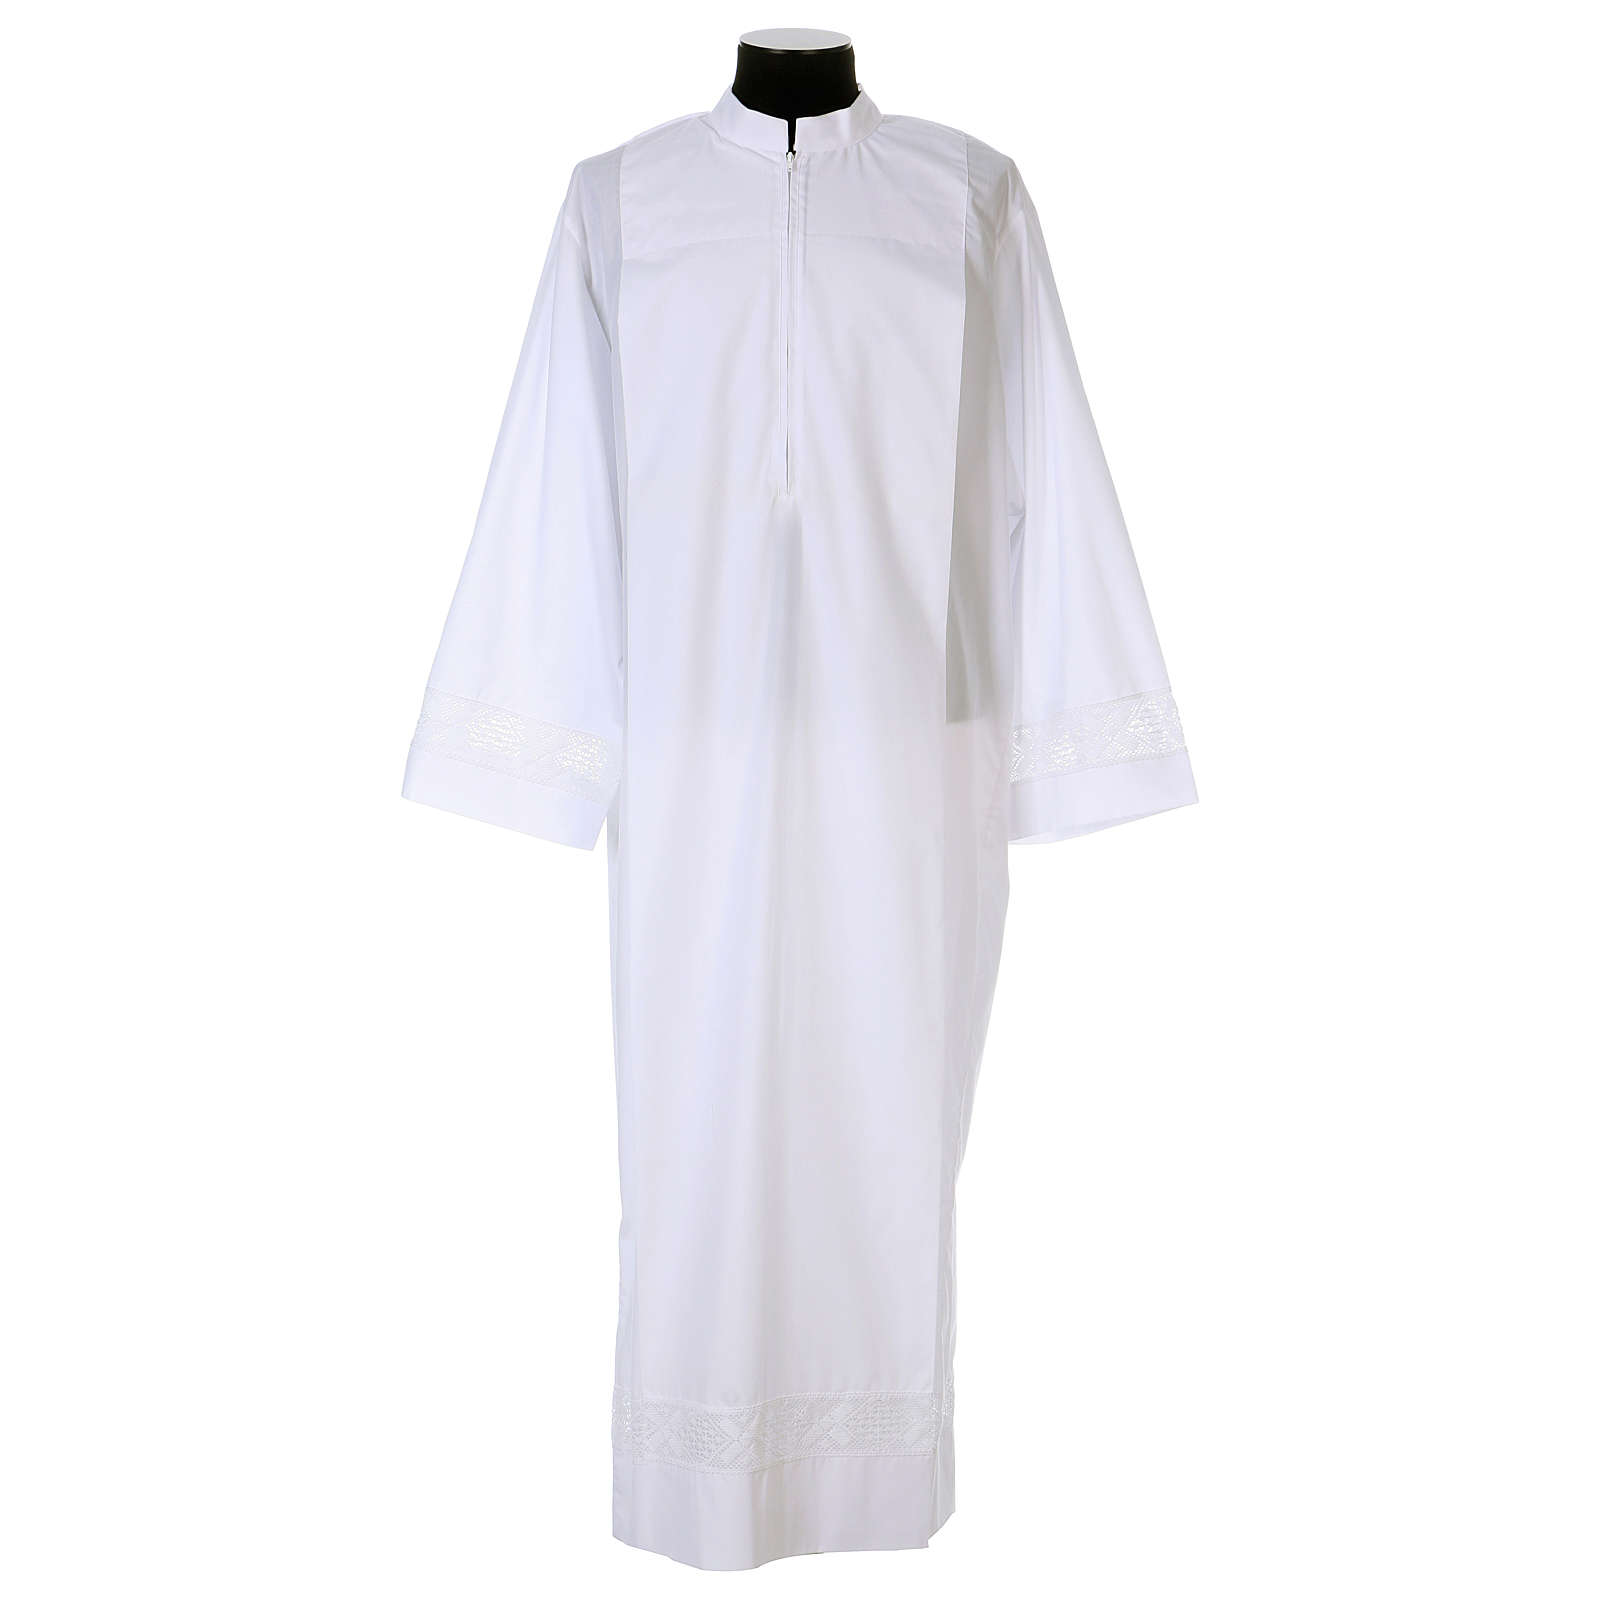 Catholic Alb with lace partition 65% polyester 35% cotton with front zipper 4